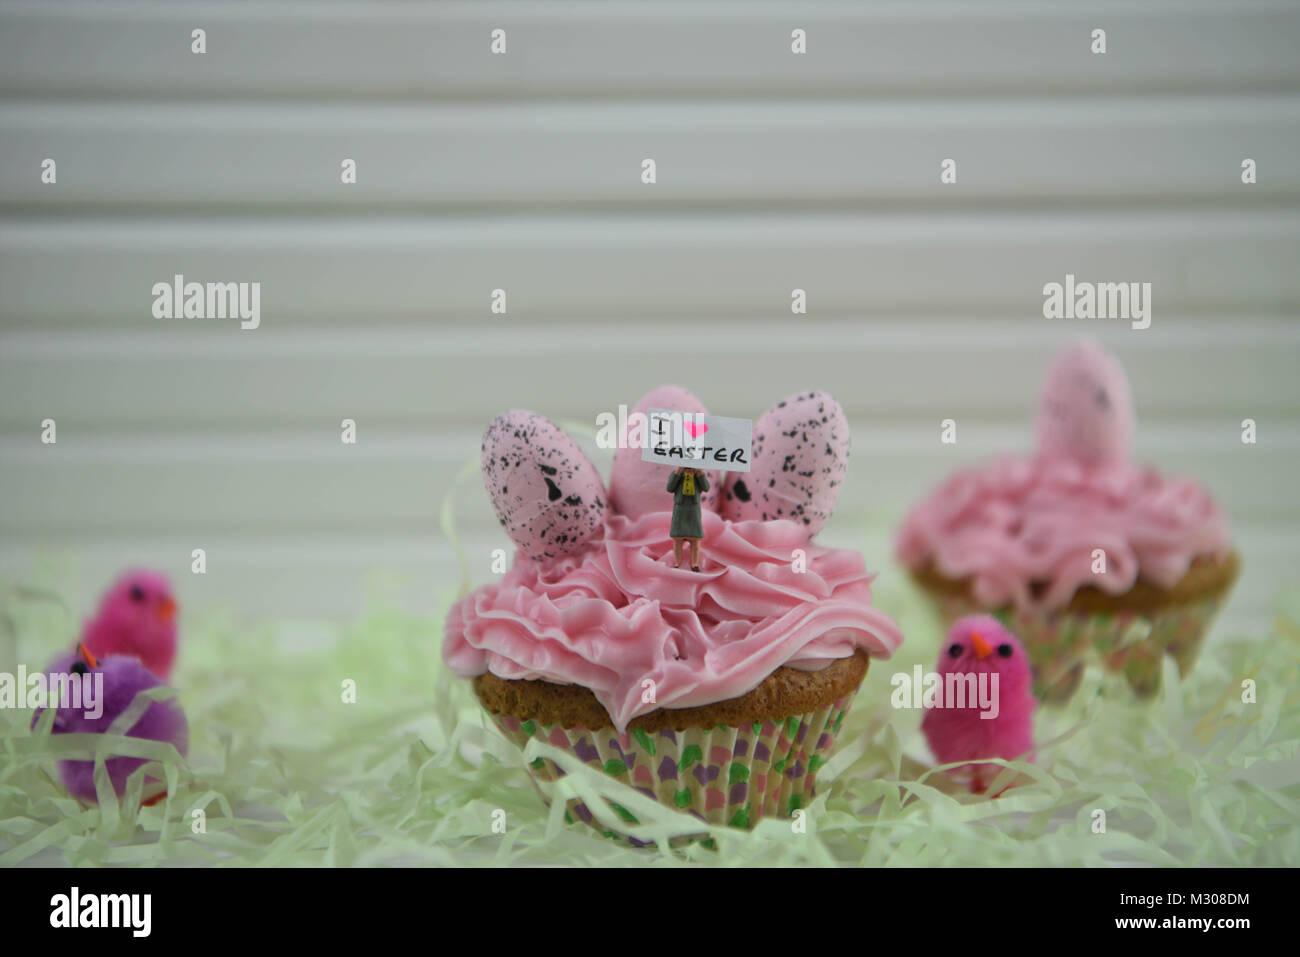 Easter time pink cupcake with egg decorations and miniature person figurine on top with a sign of I love Easter Stock Photo